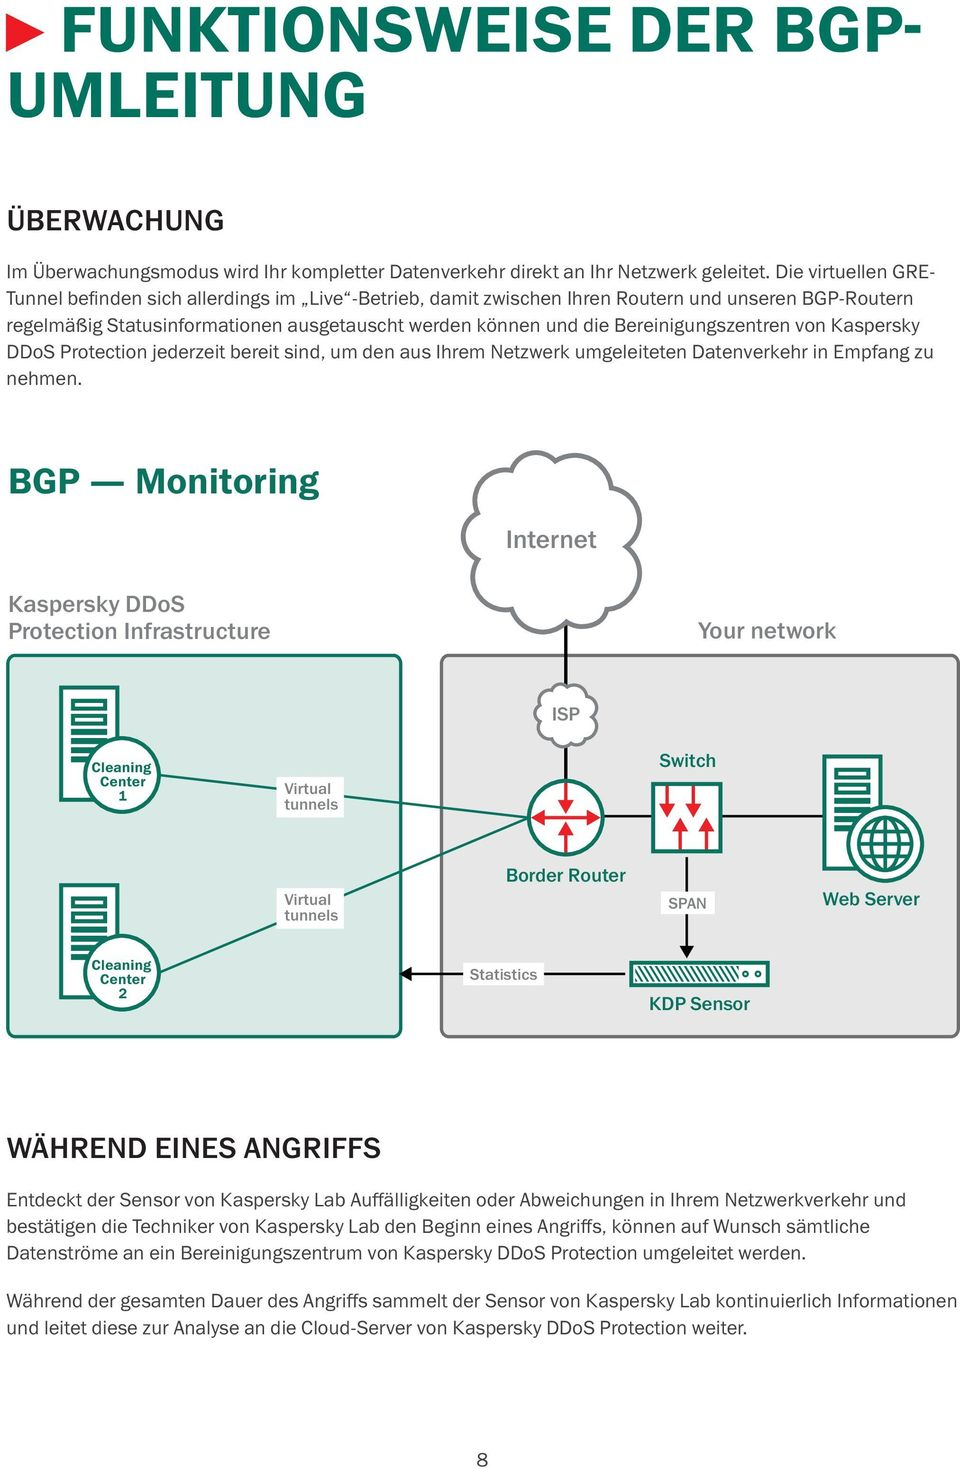 Ihren Routern However, und the unseren GRE virtual BGP-Routern are regelmäßig in live operation Statusinformationen with your routers ausgetauscht and our BGP werden routers können frequently und